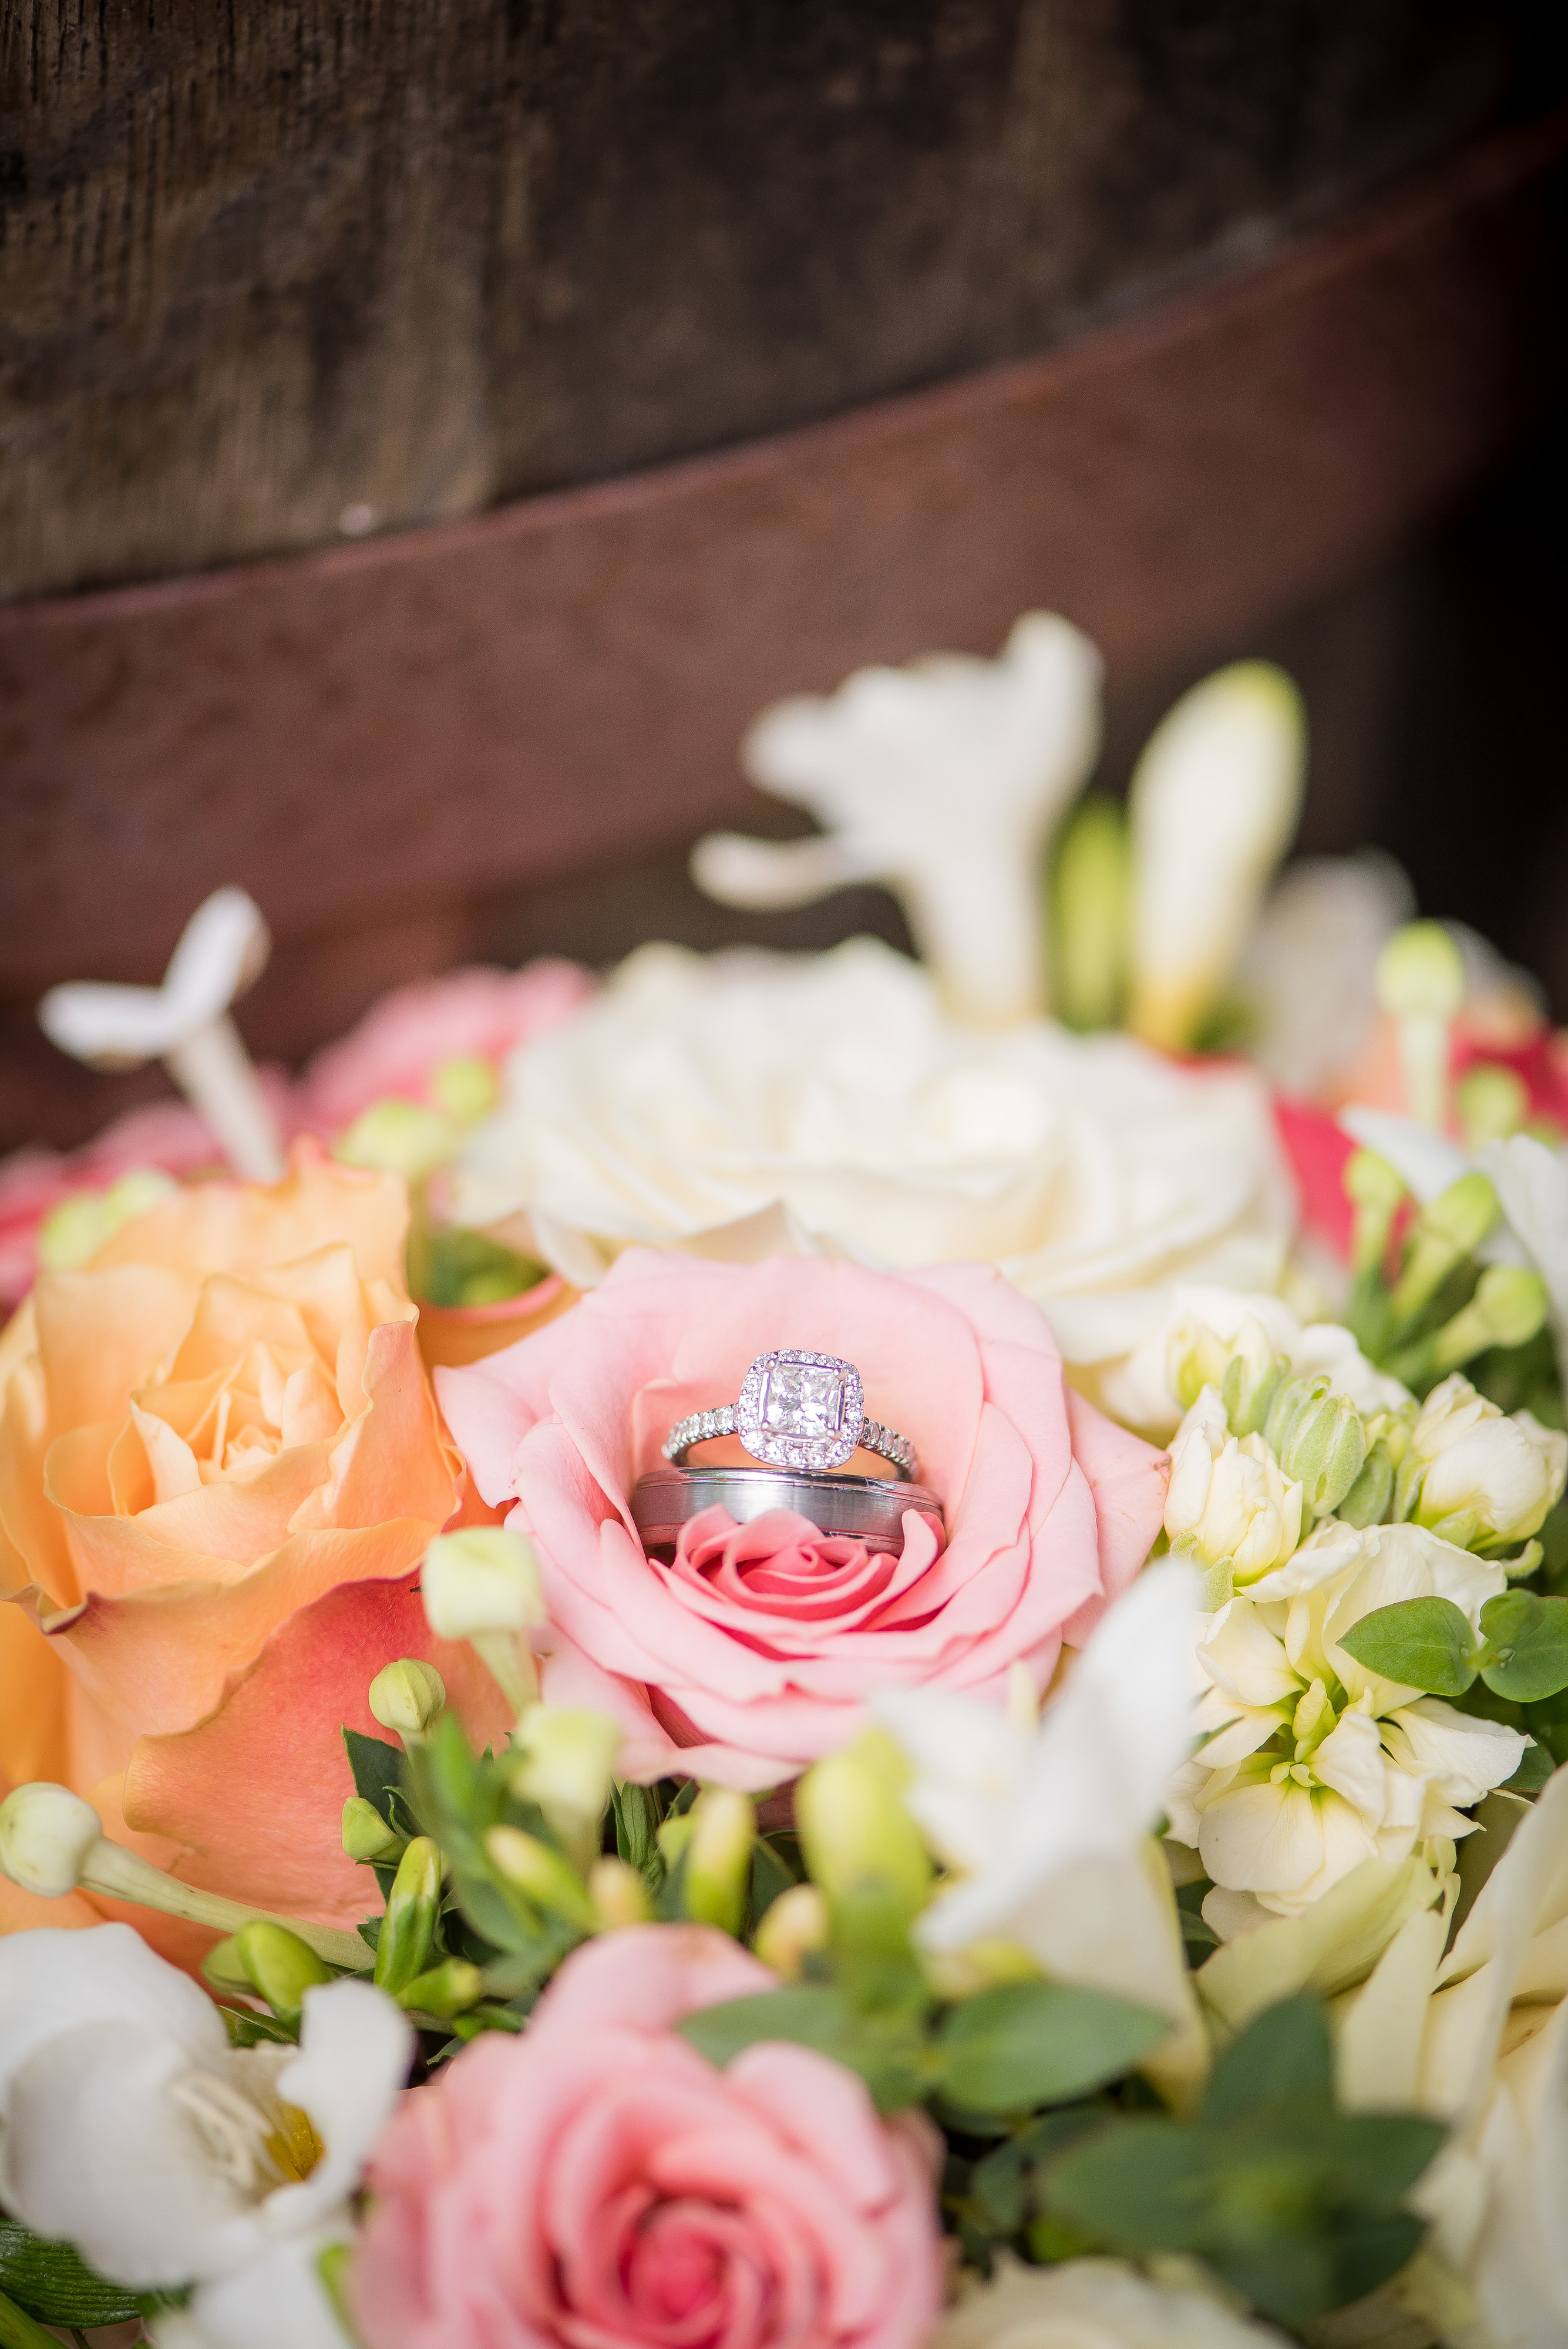 A Ring in Roses